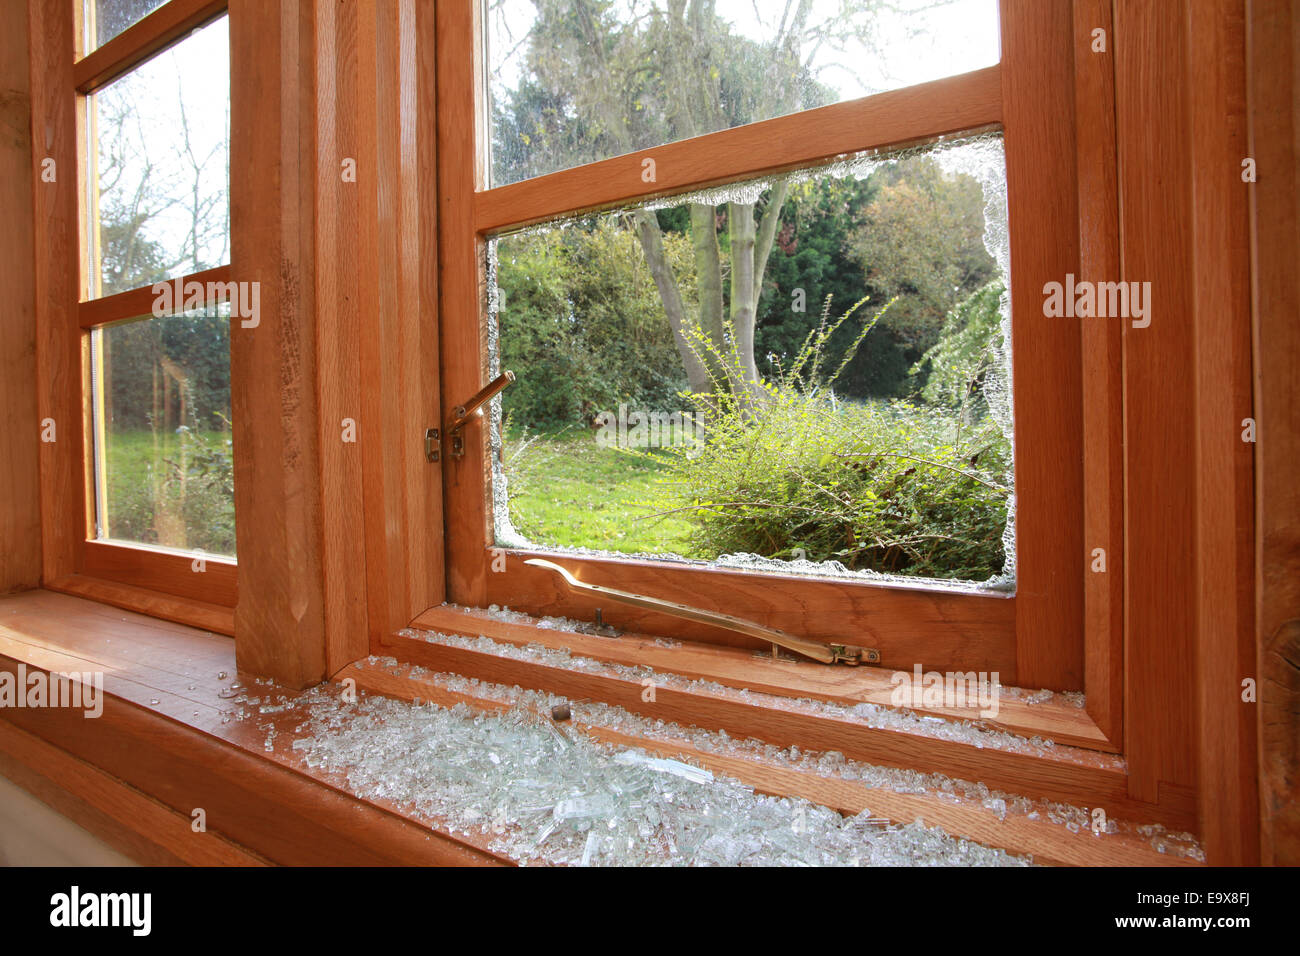 broken window after break in - Stock Image